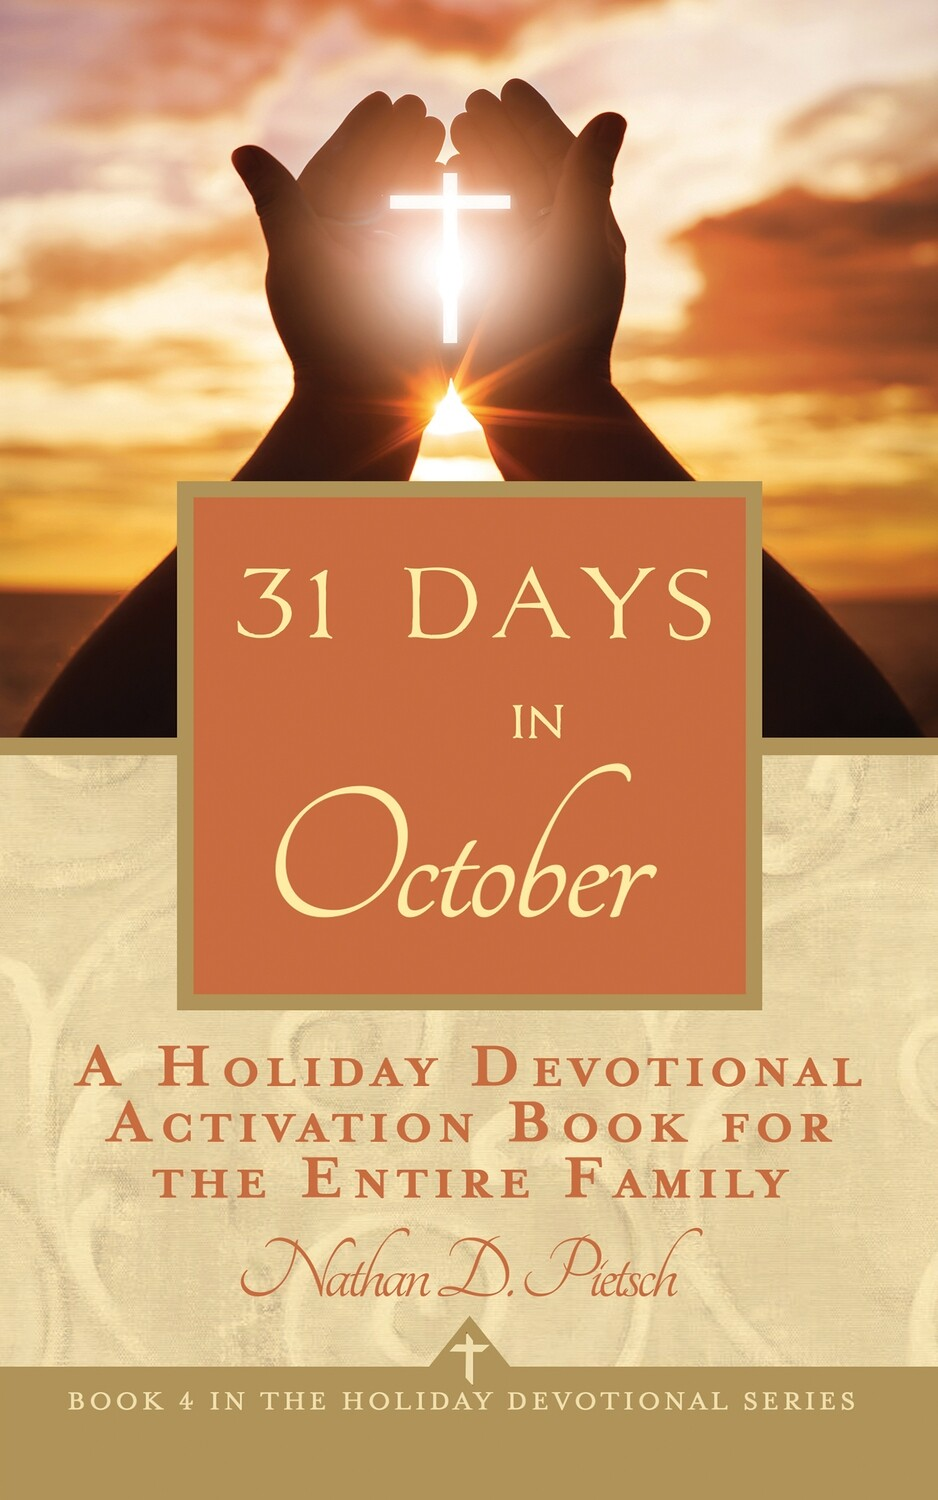 31 Days in October (Holiday Devotional Series Book 4)